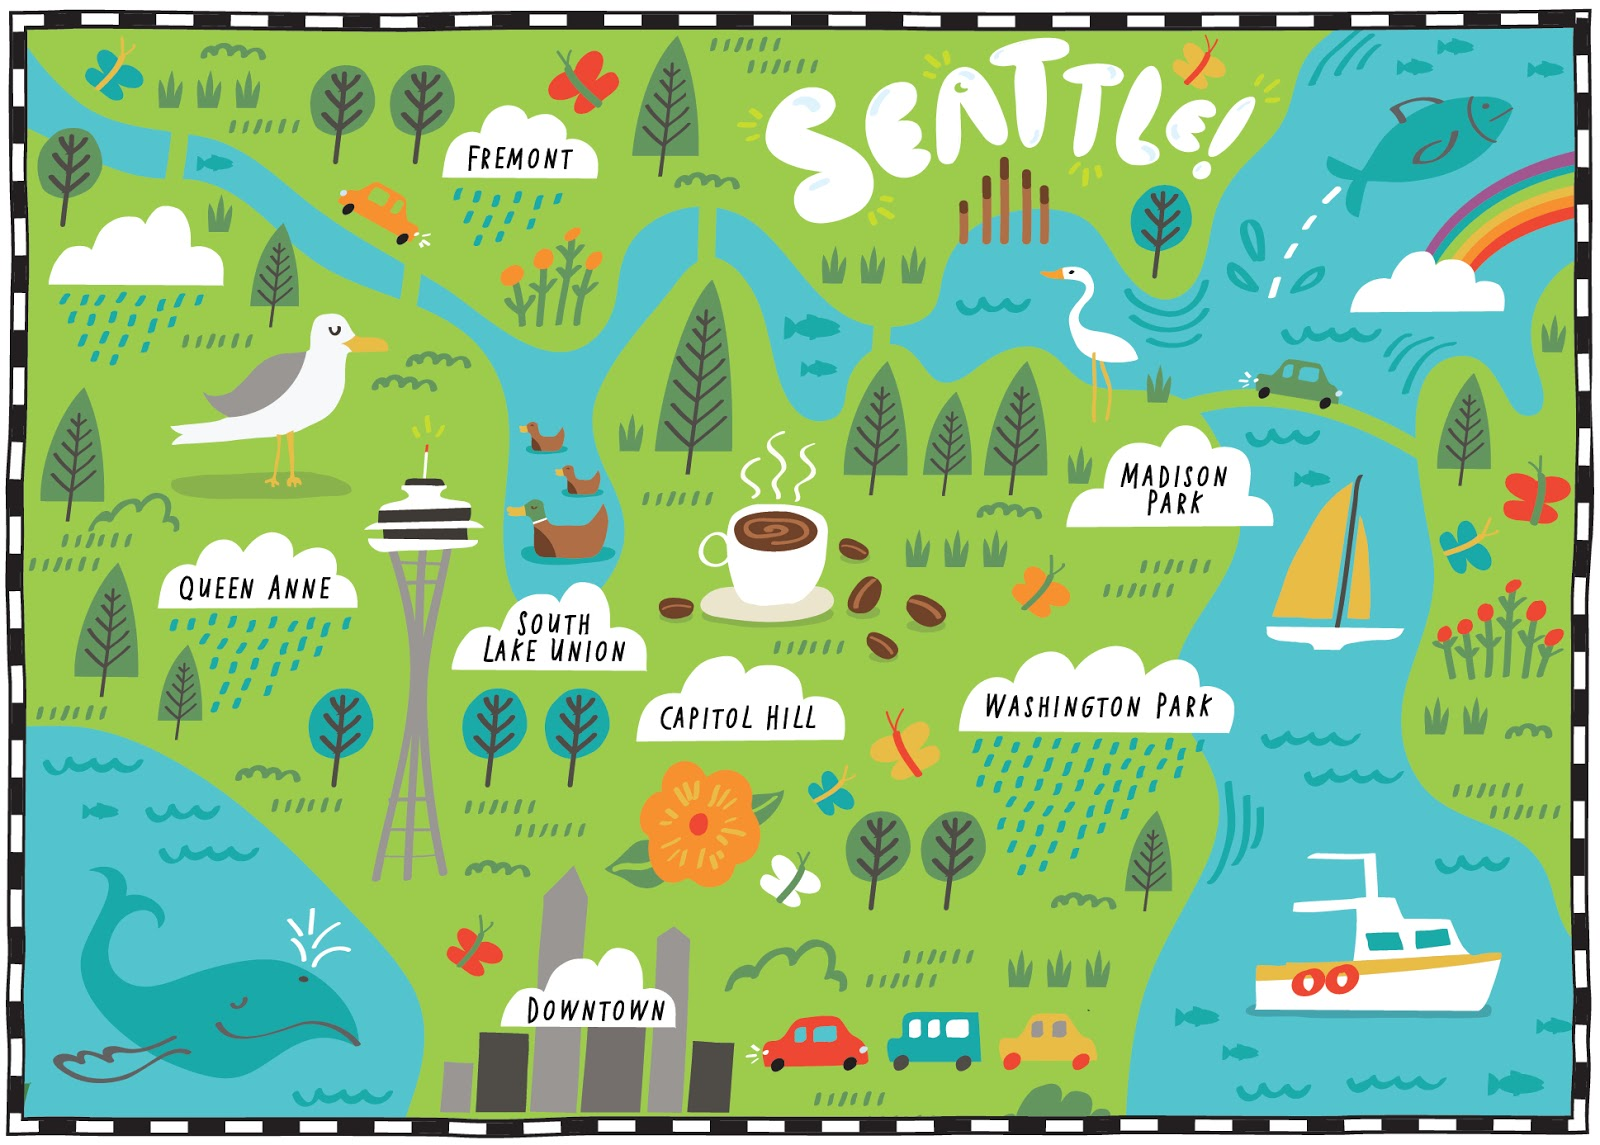 I Draw Maps Illustrated Map Of Seattle For The Wall Street Journal